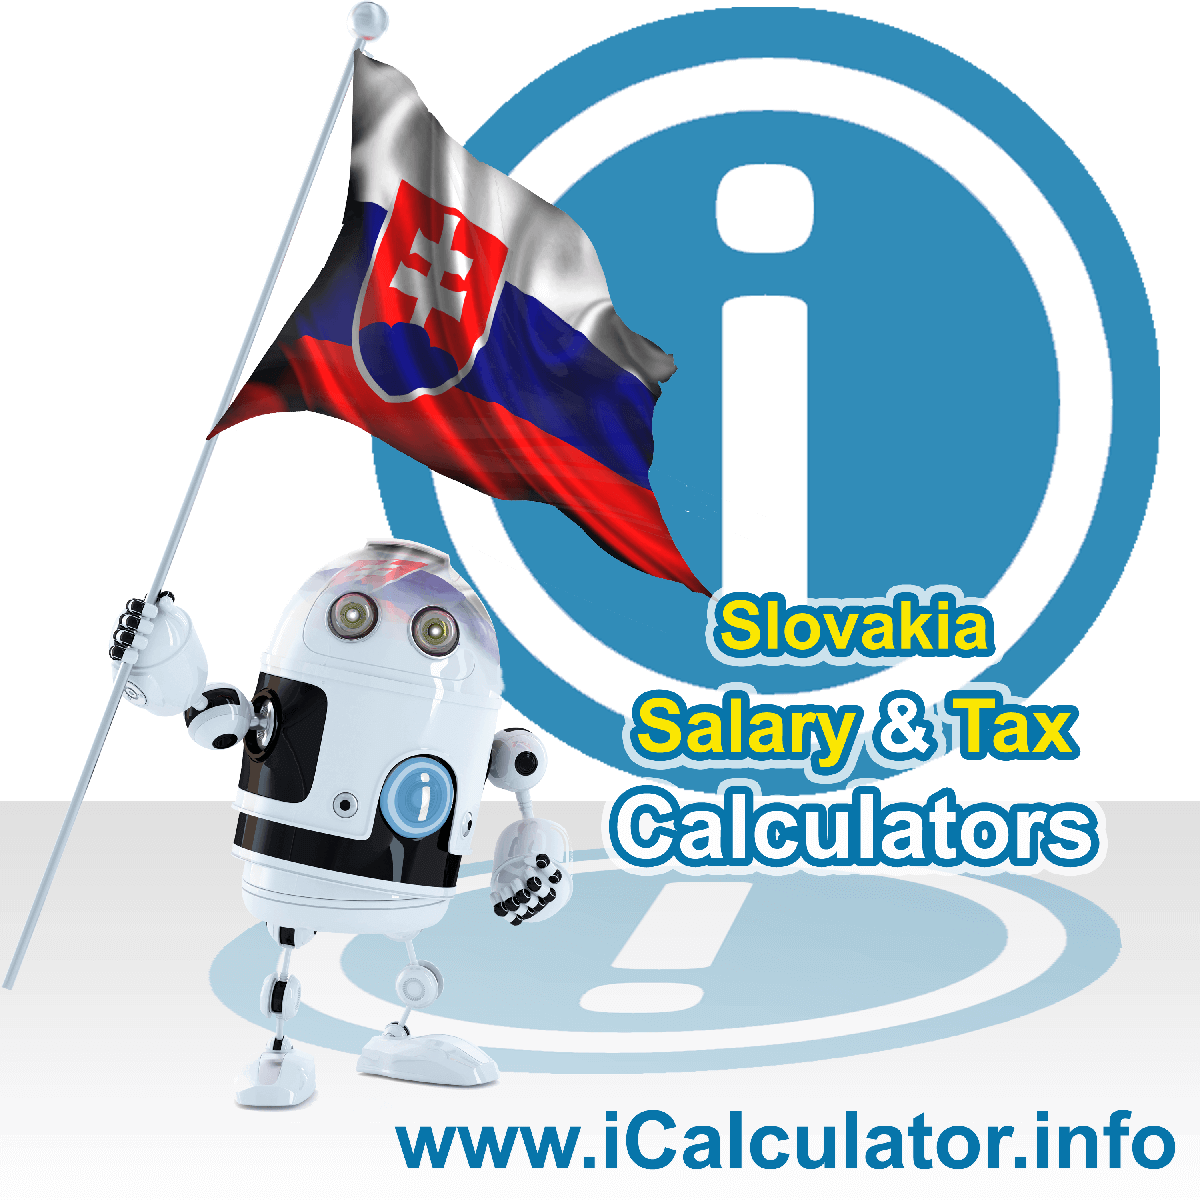 Slovakia Tax Calculator. This image shows the Slovakia flag and information relating to the tax formula for the Slovakia Salary Calculator